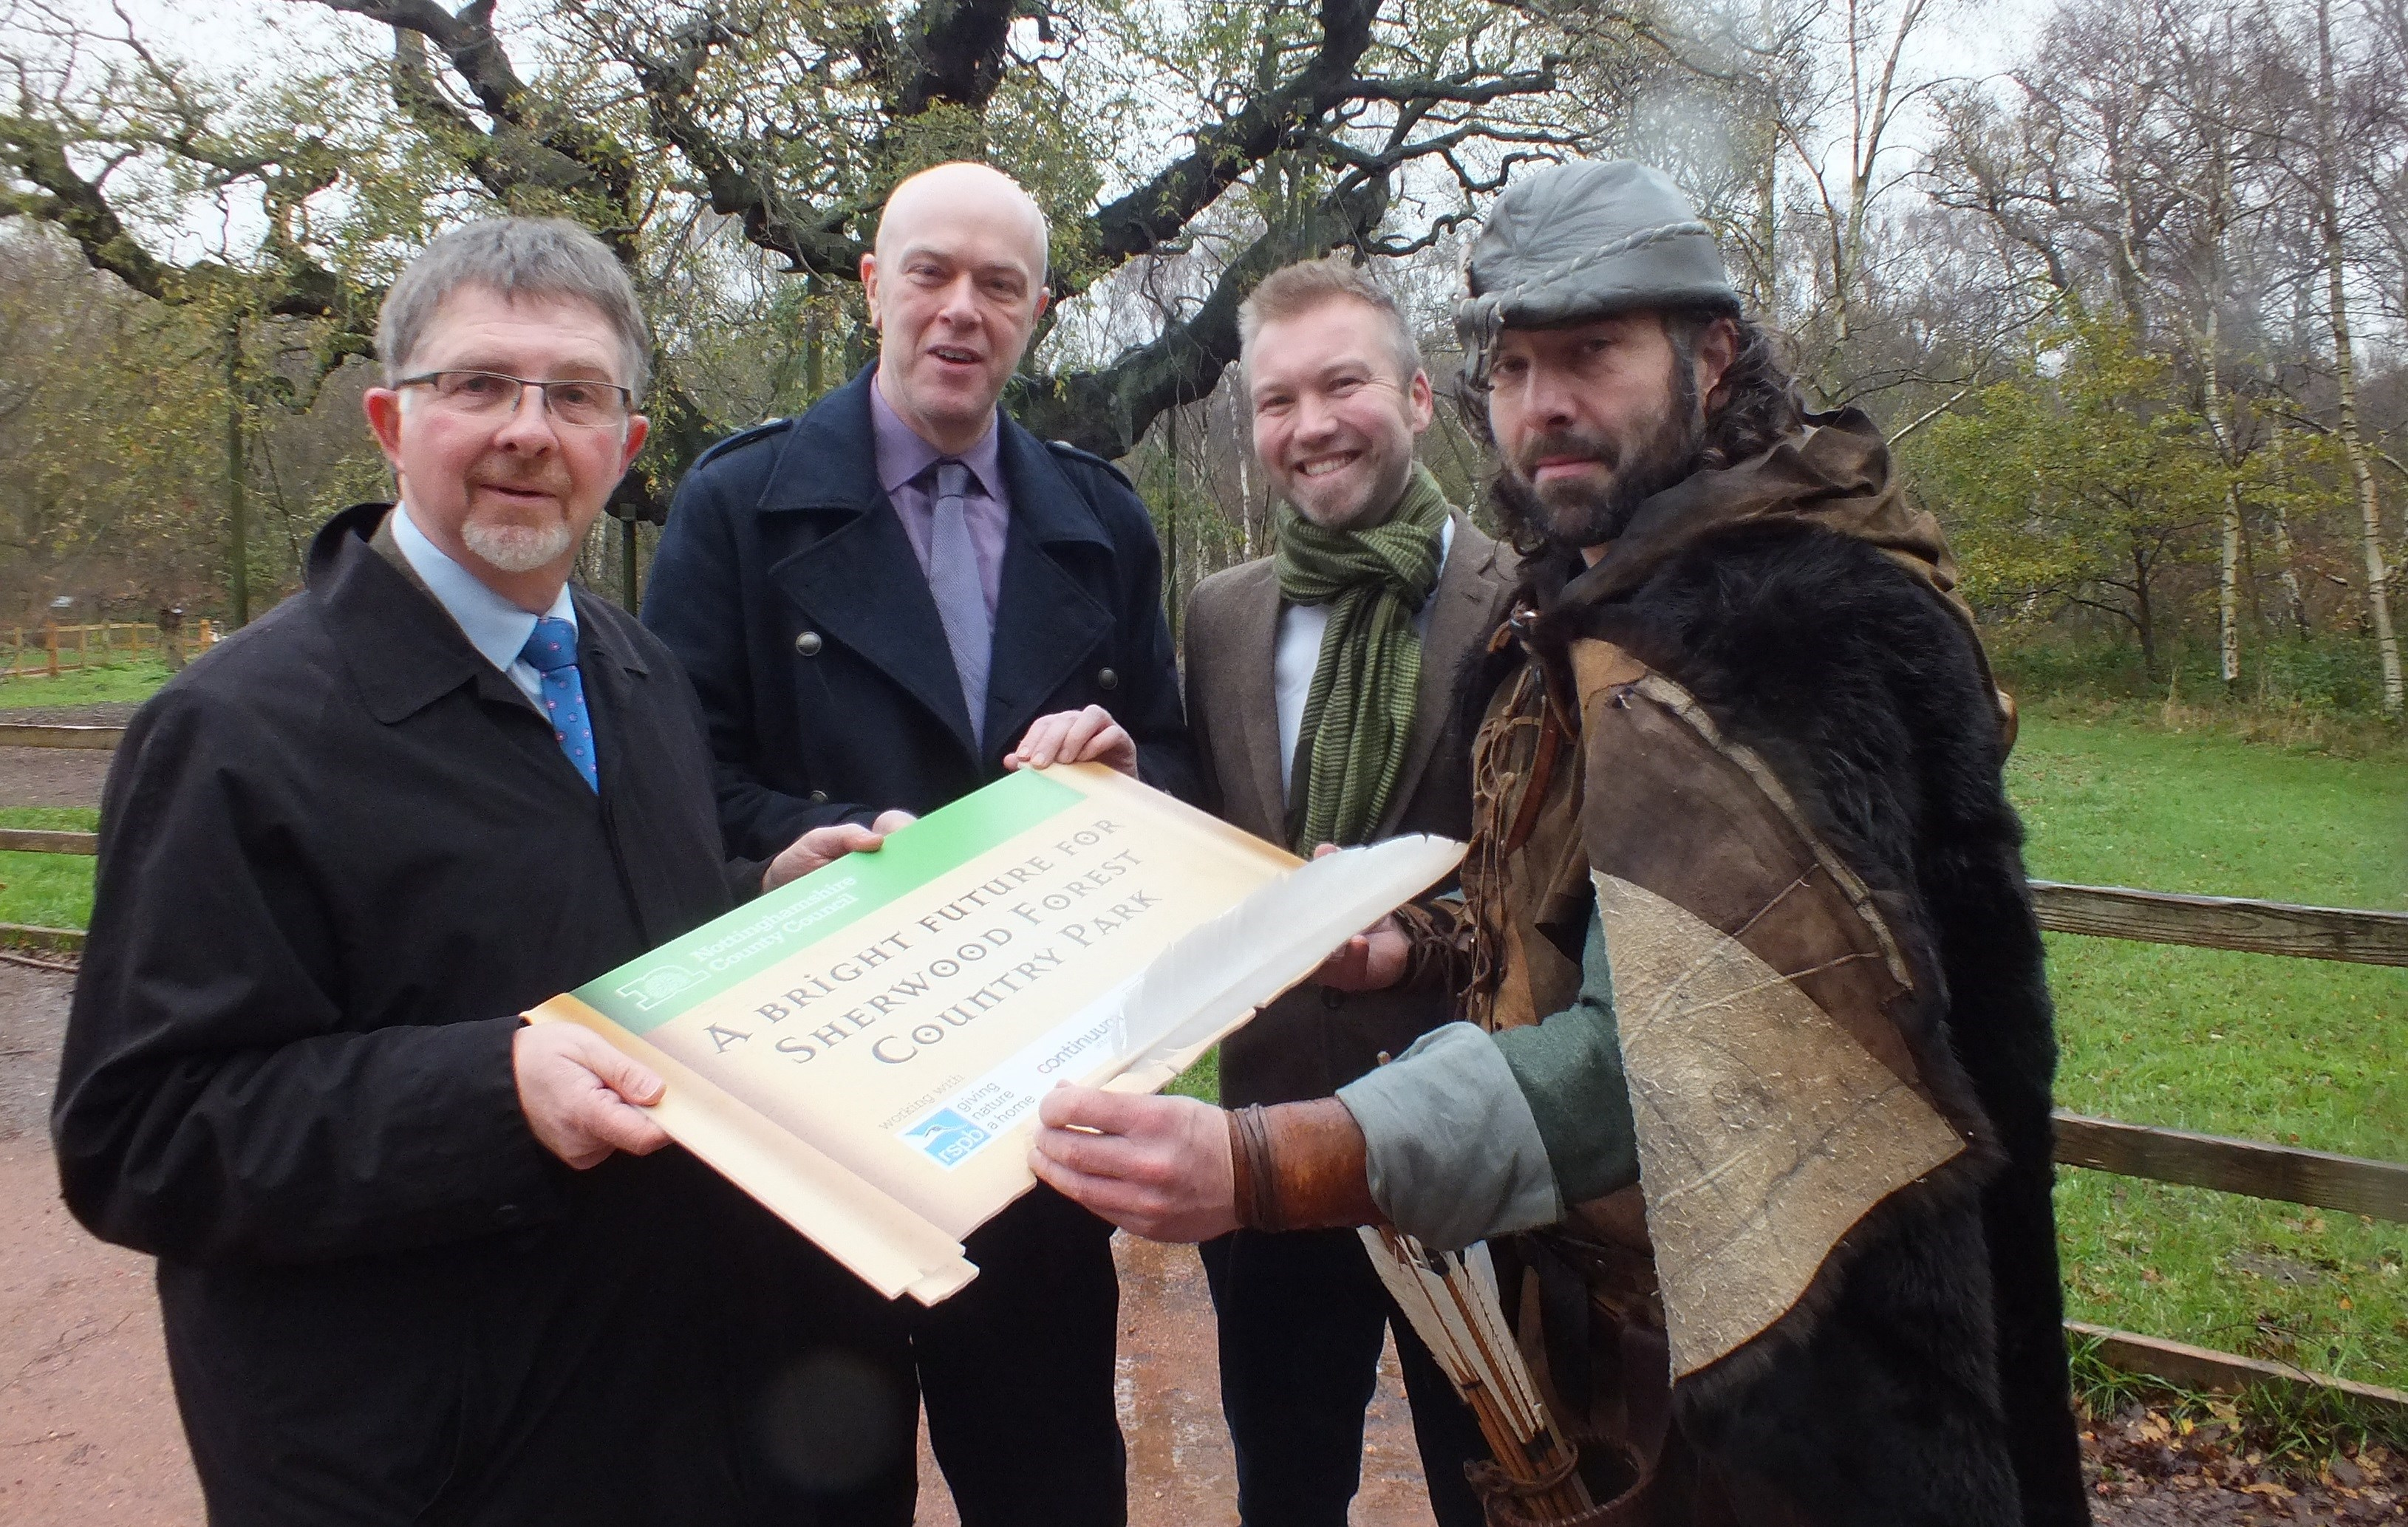 A bright new chapter for Sherwood Forest